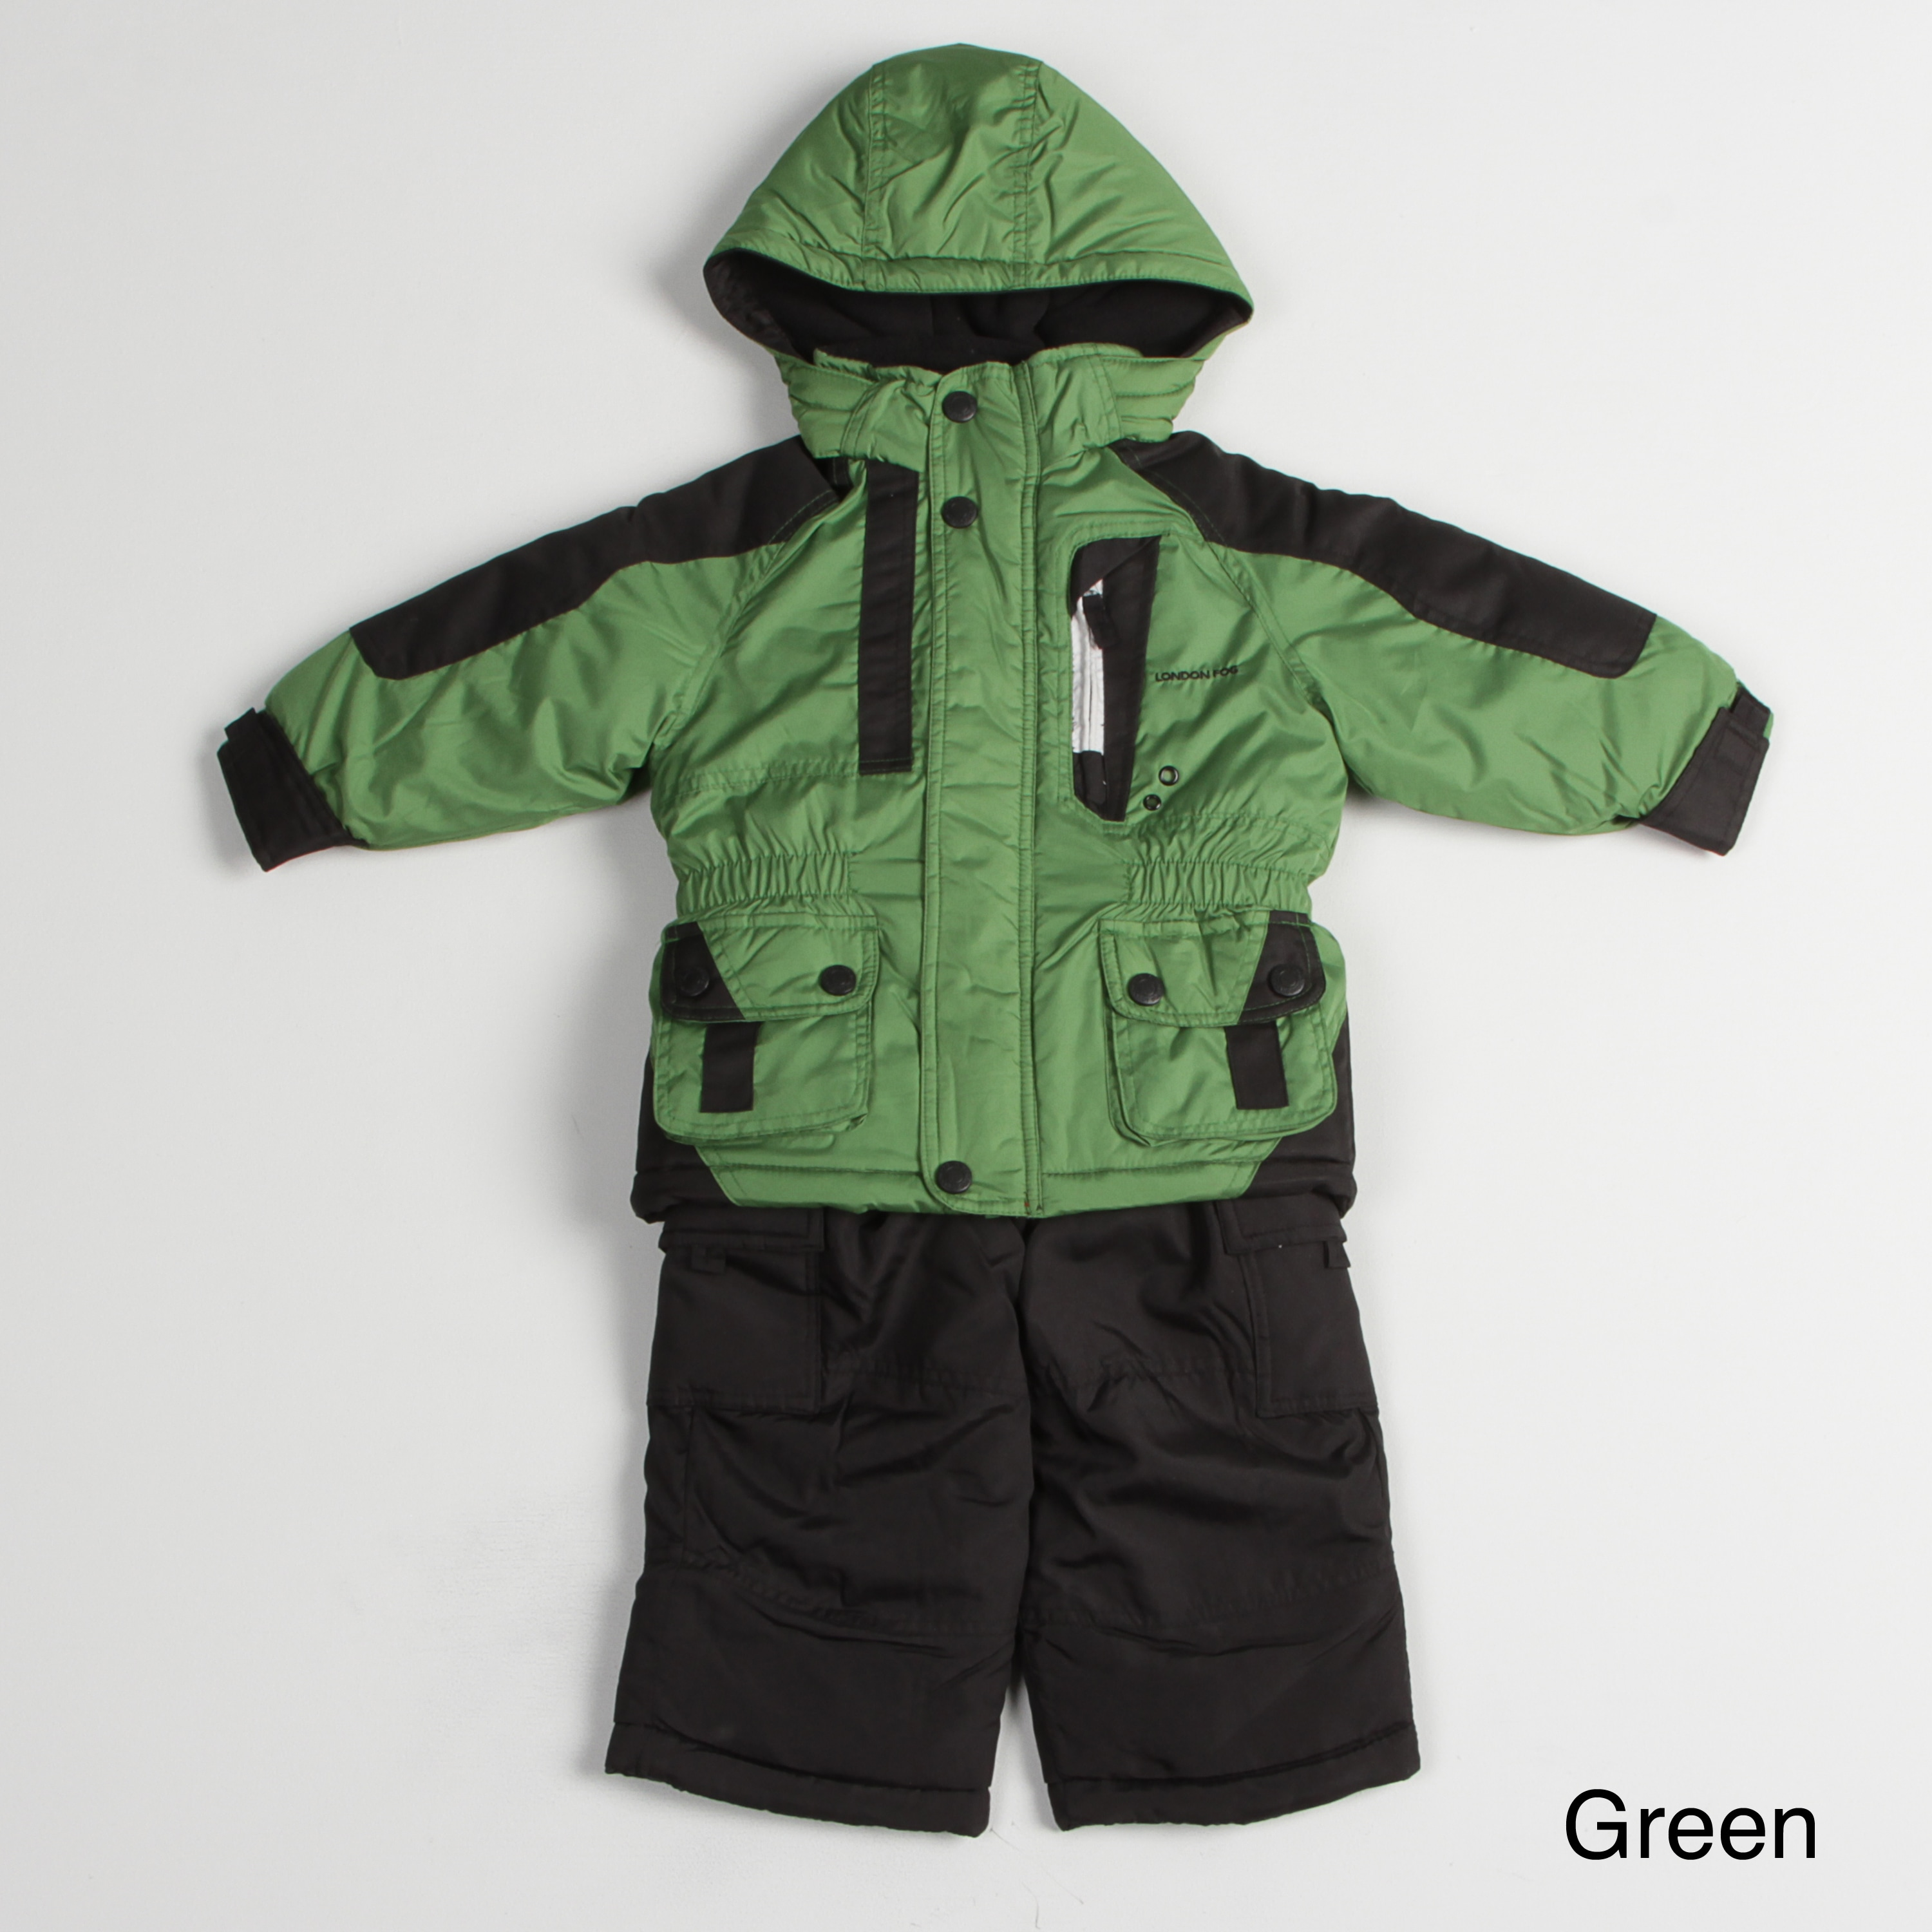 2780ee14b Shop London Fog Toddler Boy s Colorblock Snow Suit - Free Shipping ...